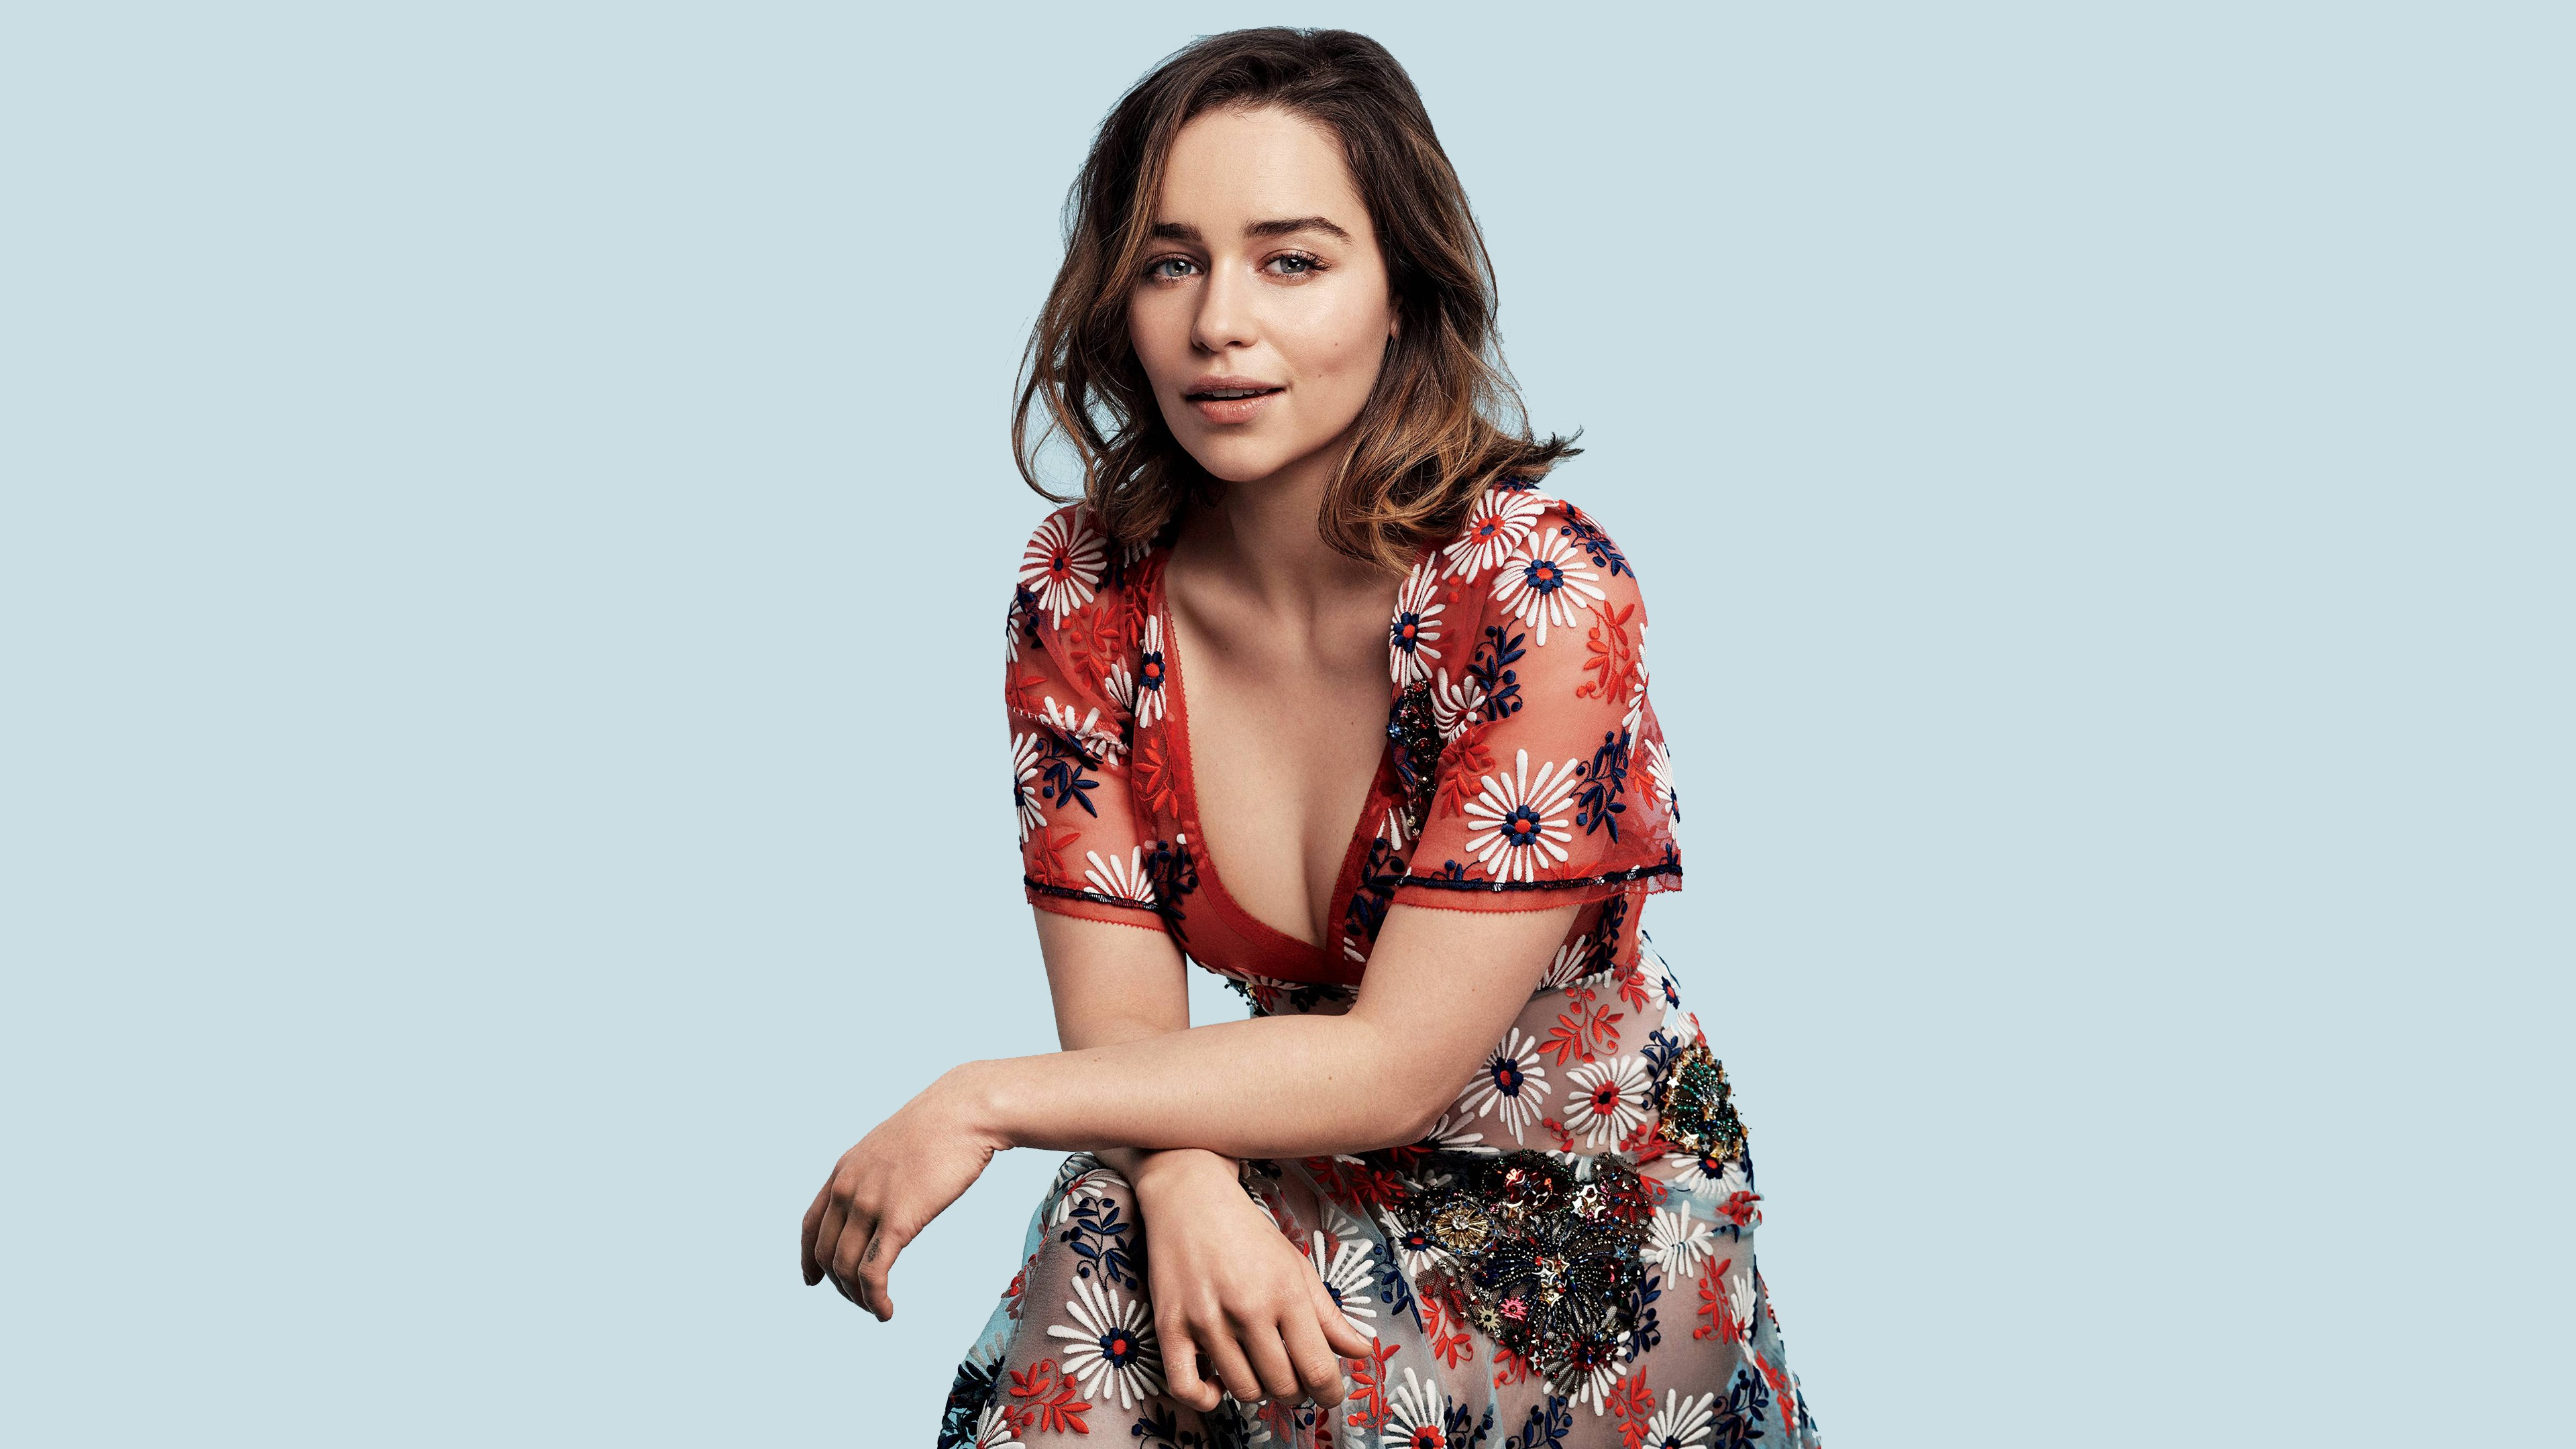 Celebrities Emilia Clarke 4K Photoshoot wallpapers (Desktop, Phone ...